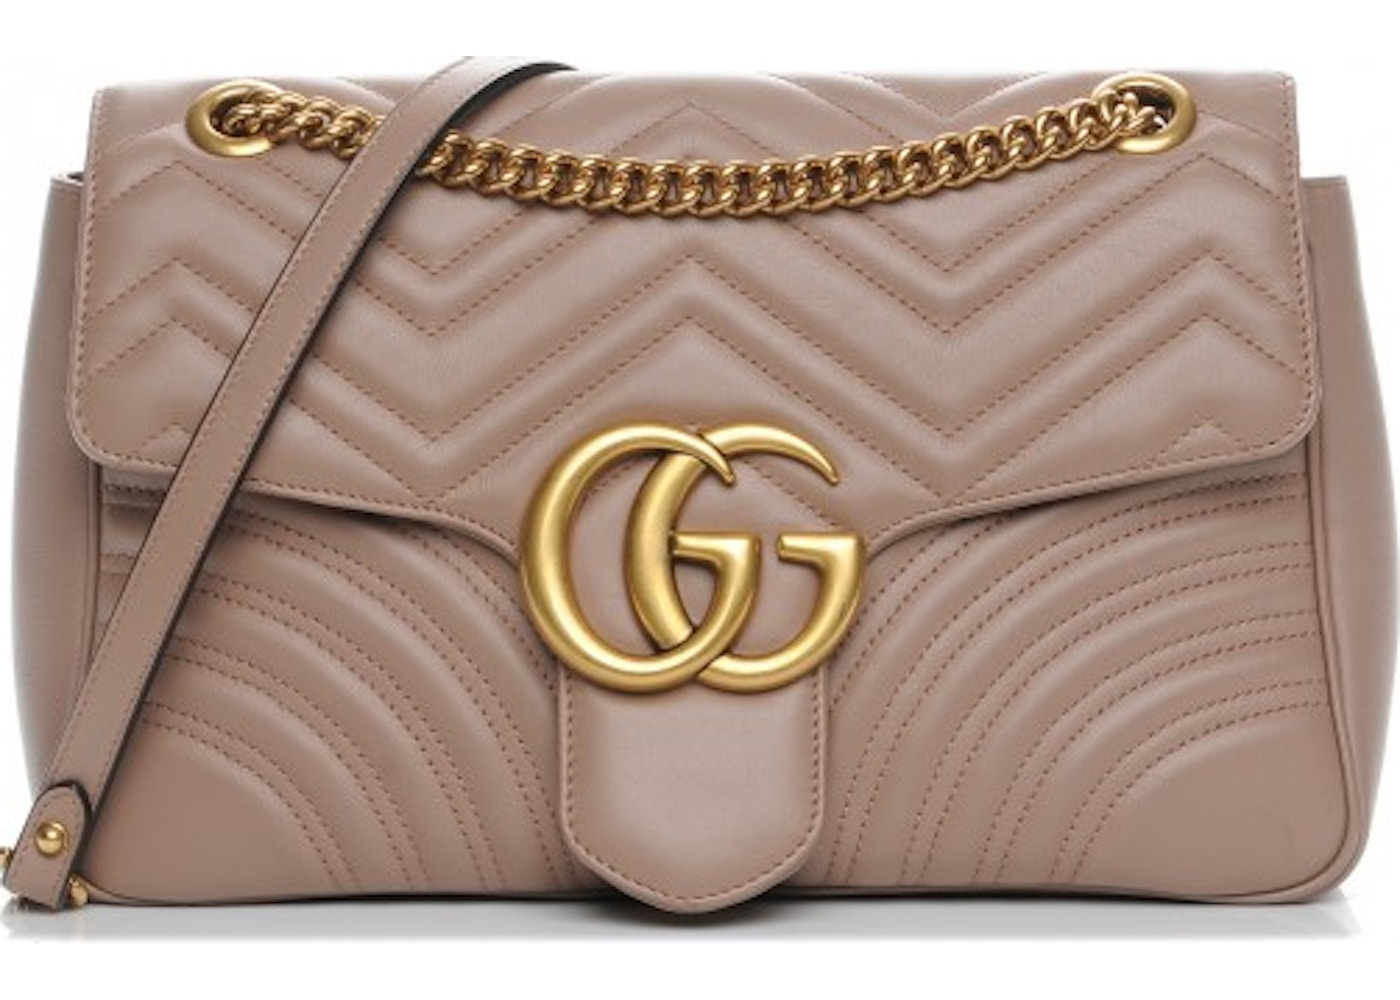 8f19afc5b83 Gucci Marmont Shoulder Bag Matelasse GG Medium Nude. Matelasse GG Medium  Nude